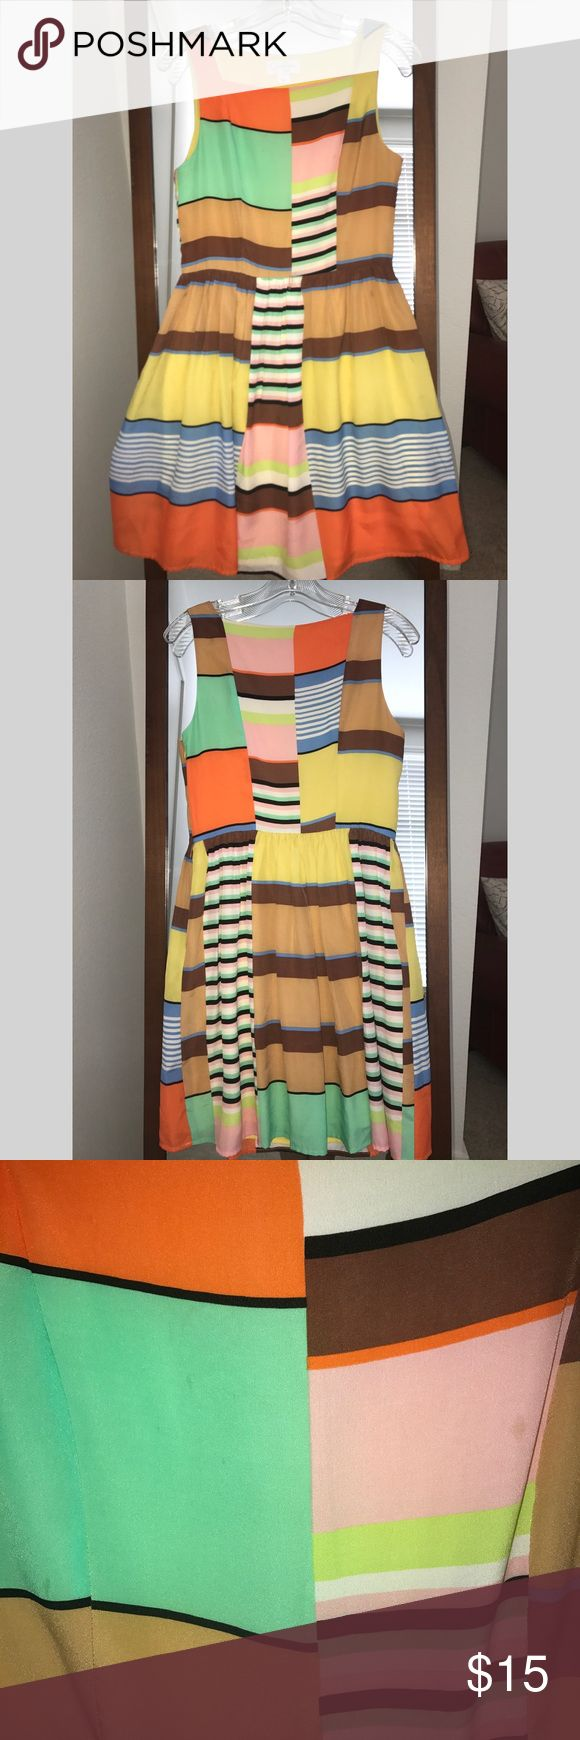 Jessica Simpson Color-blocked festive dress Super colorful stripe and color blocked print dress will add a burst of fun into your wardrobe. Yellow, orange, pink, green, blue, tan. Hits above the knee. Looks great with flats and heels. Minor stains on front (see photo). Jessica Simpson Dresses Mini